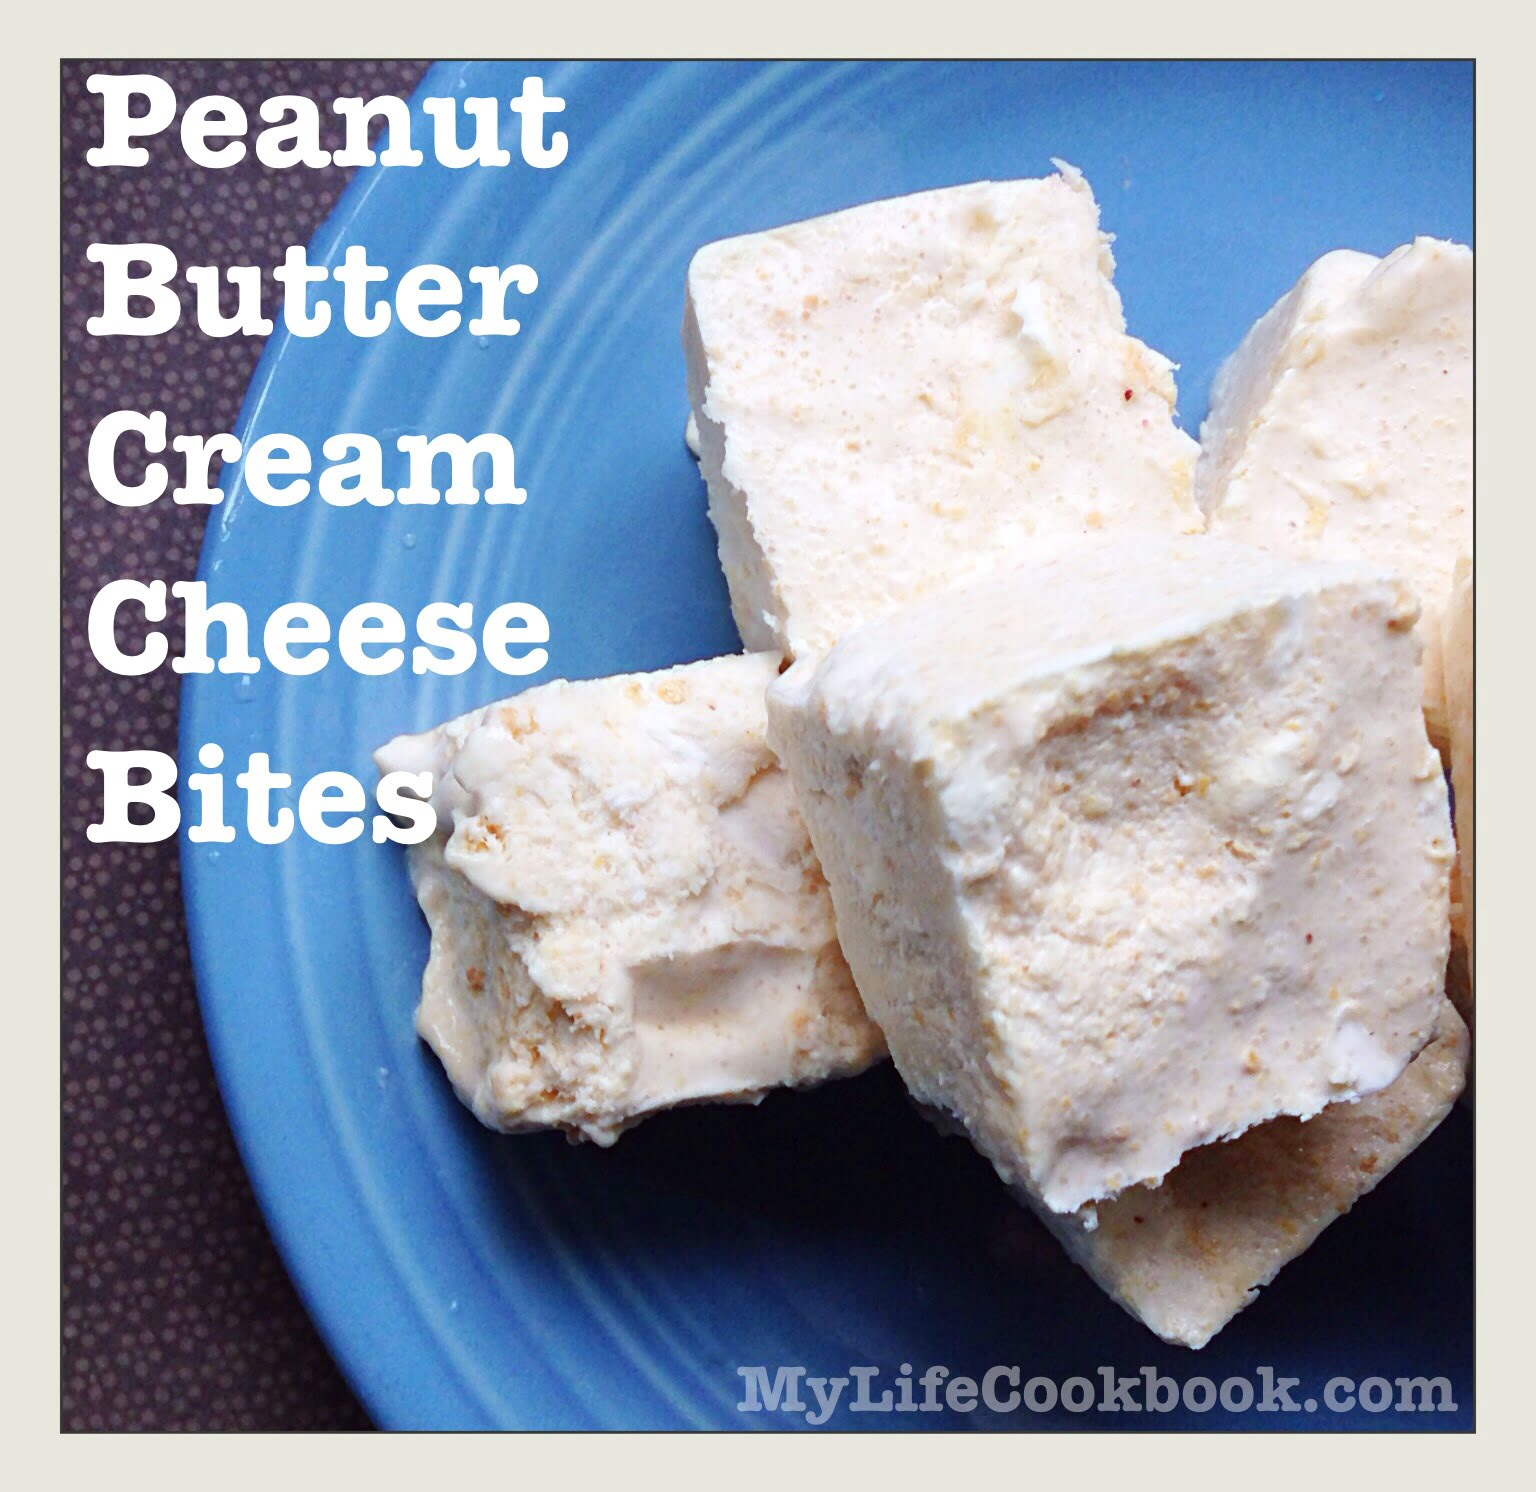 These peanut butter cream cheese bites are low carb and only 1 WW point.